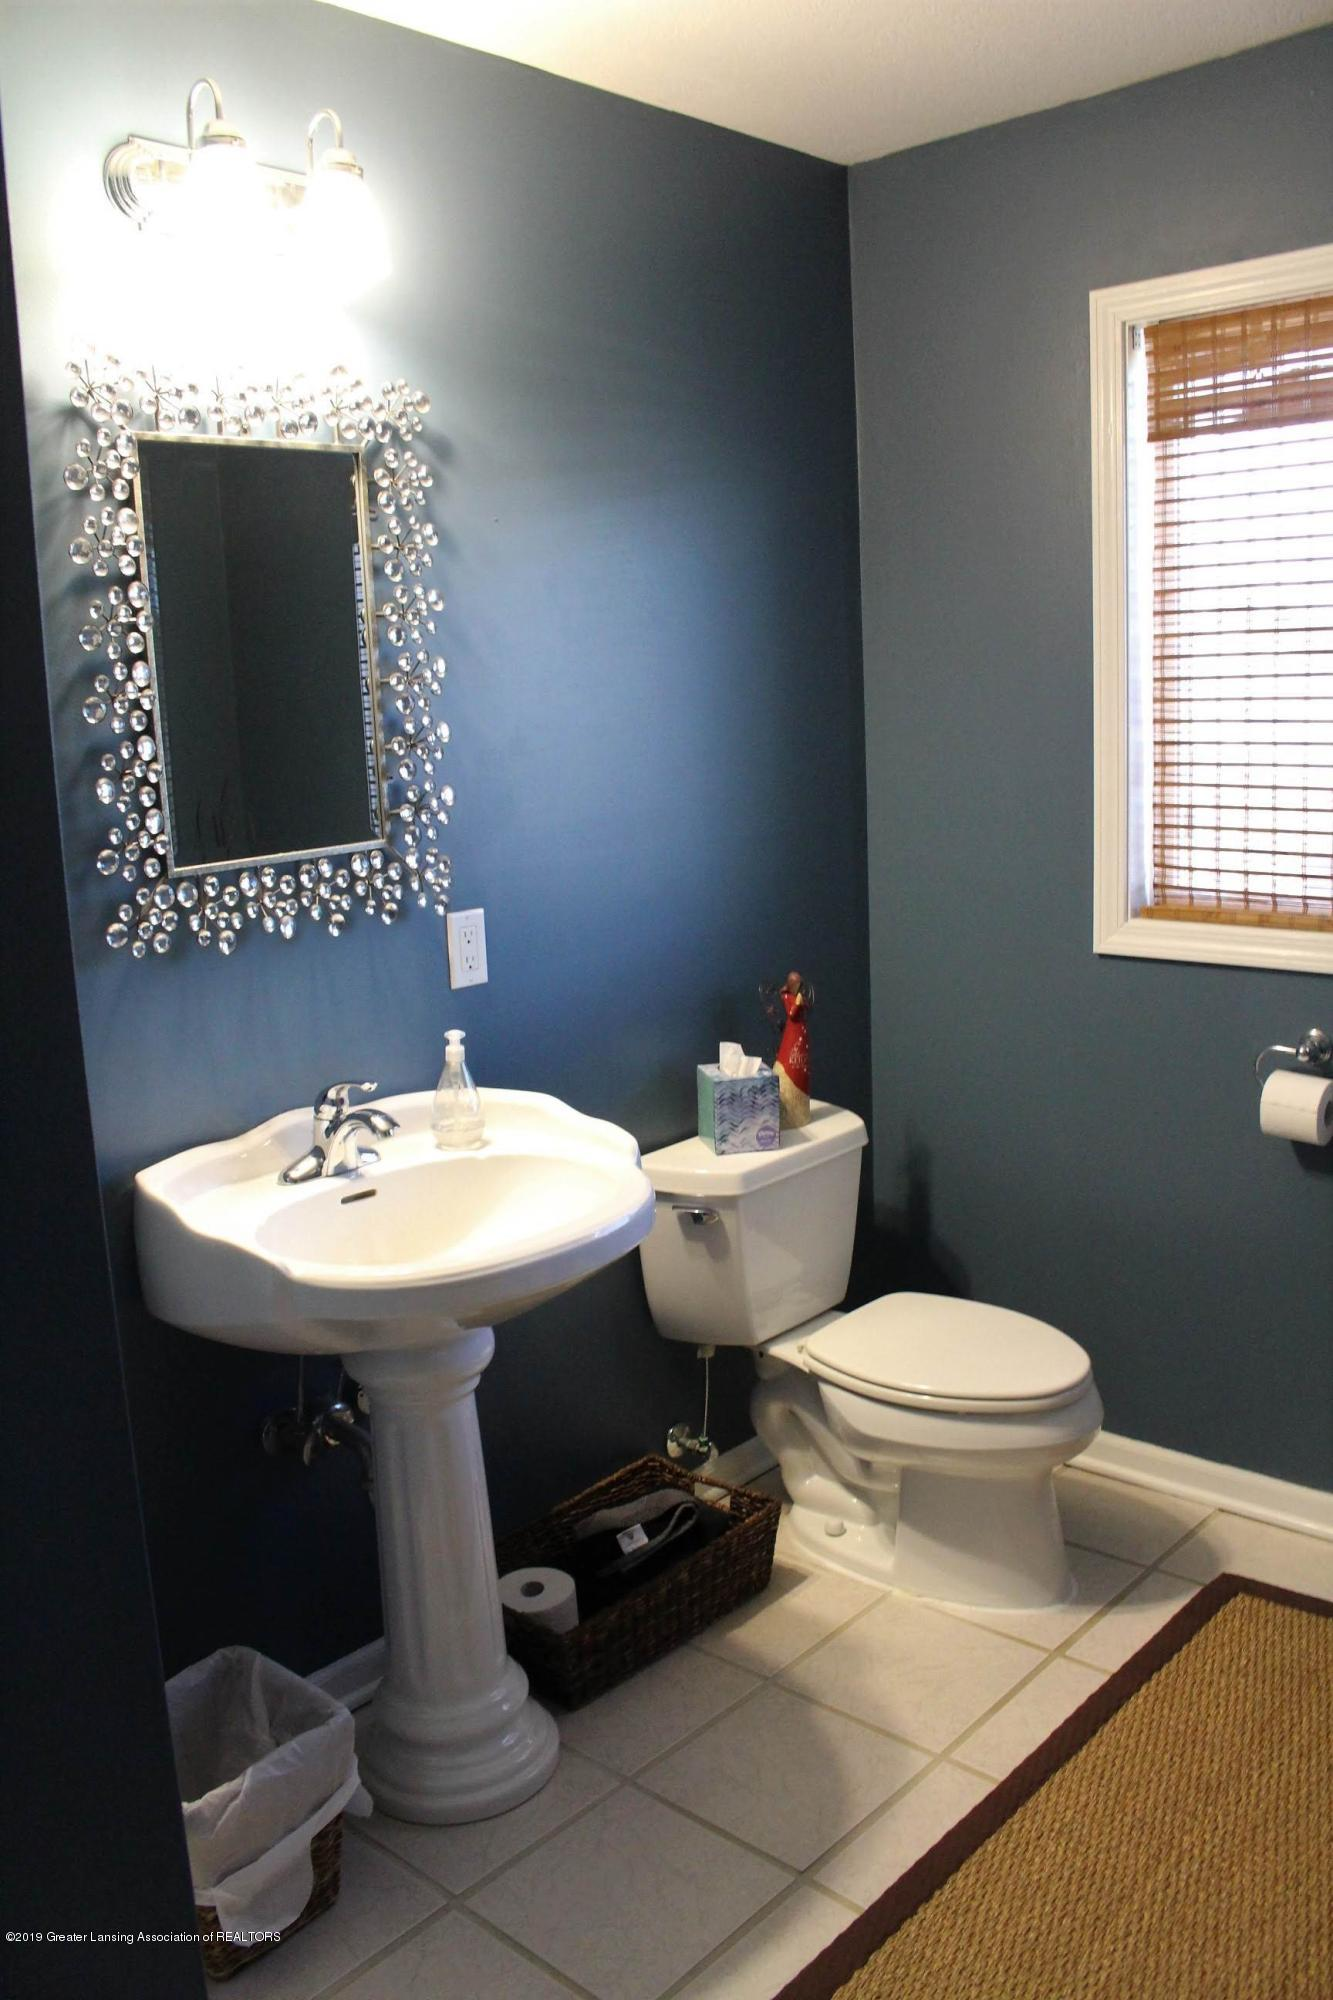 3099 E Price Rd - Bathroom - 10